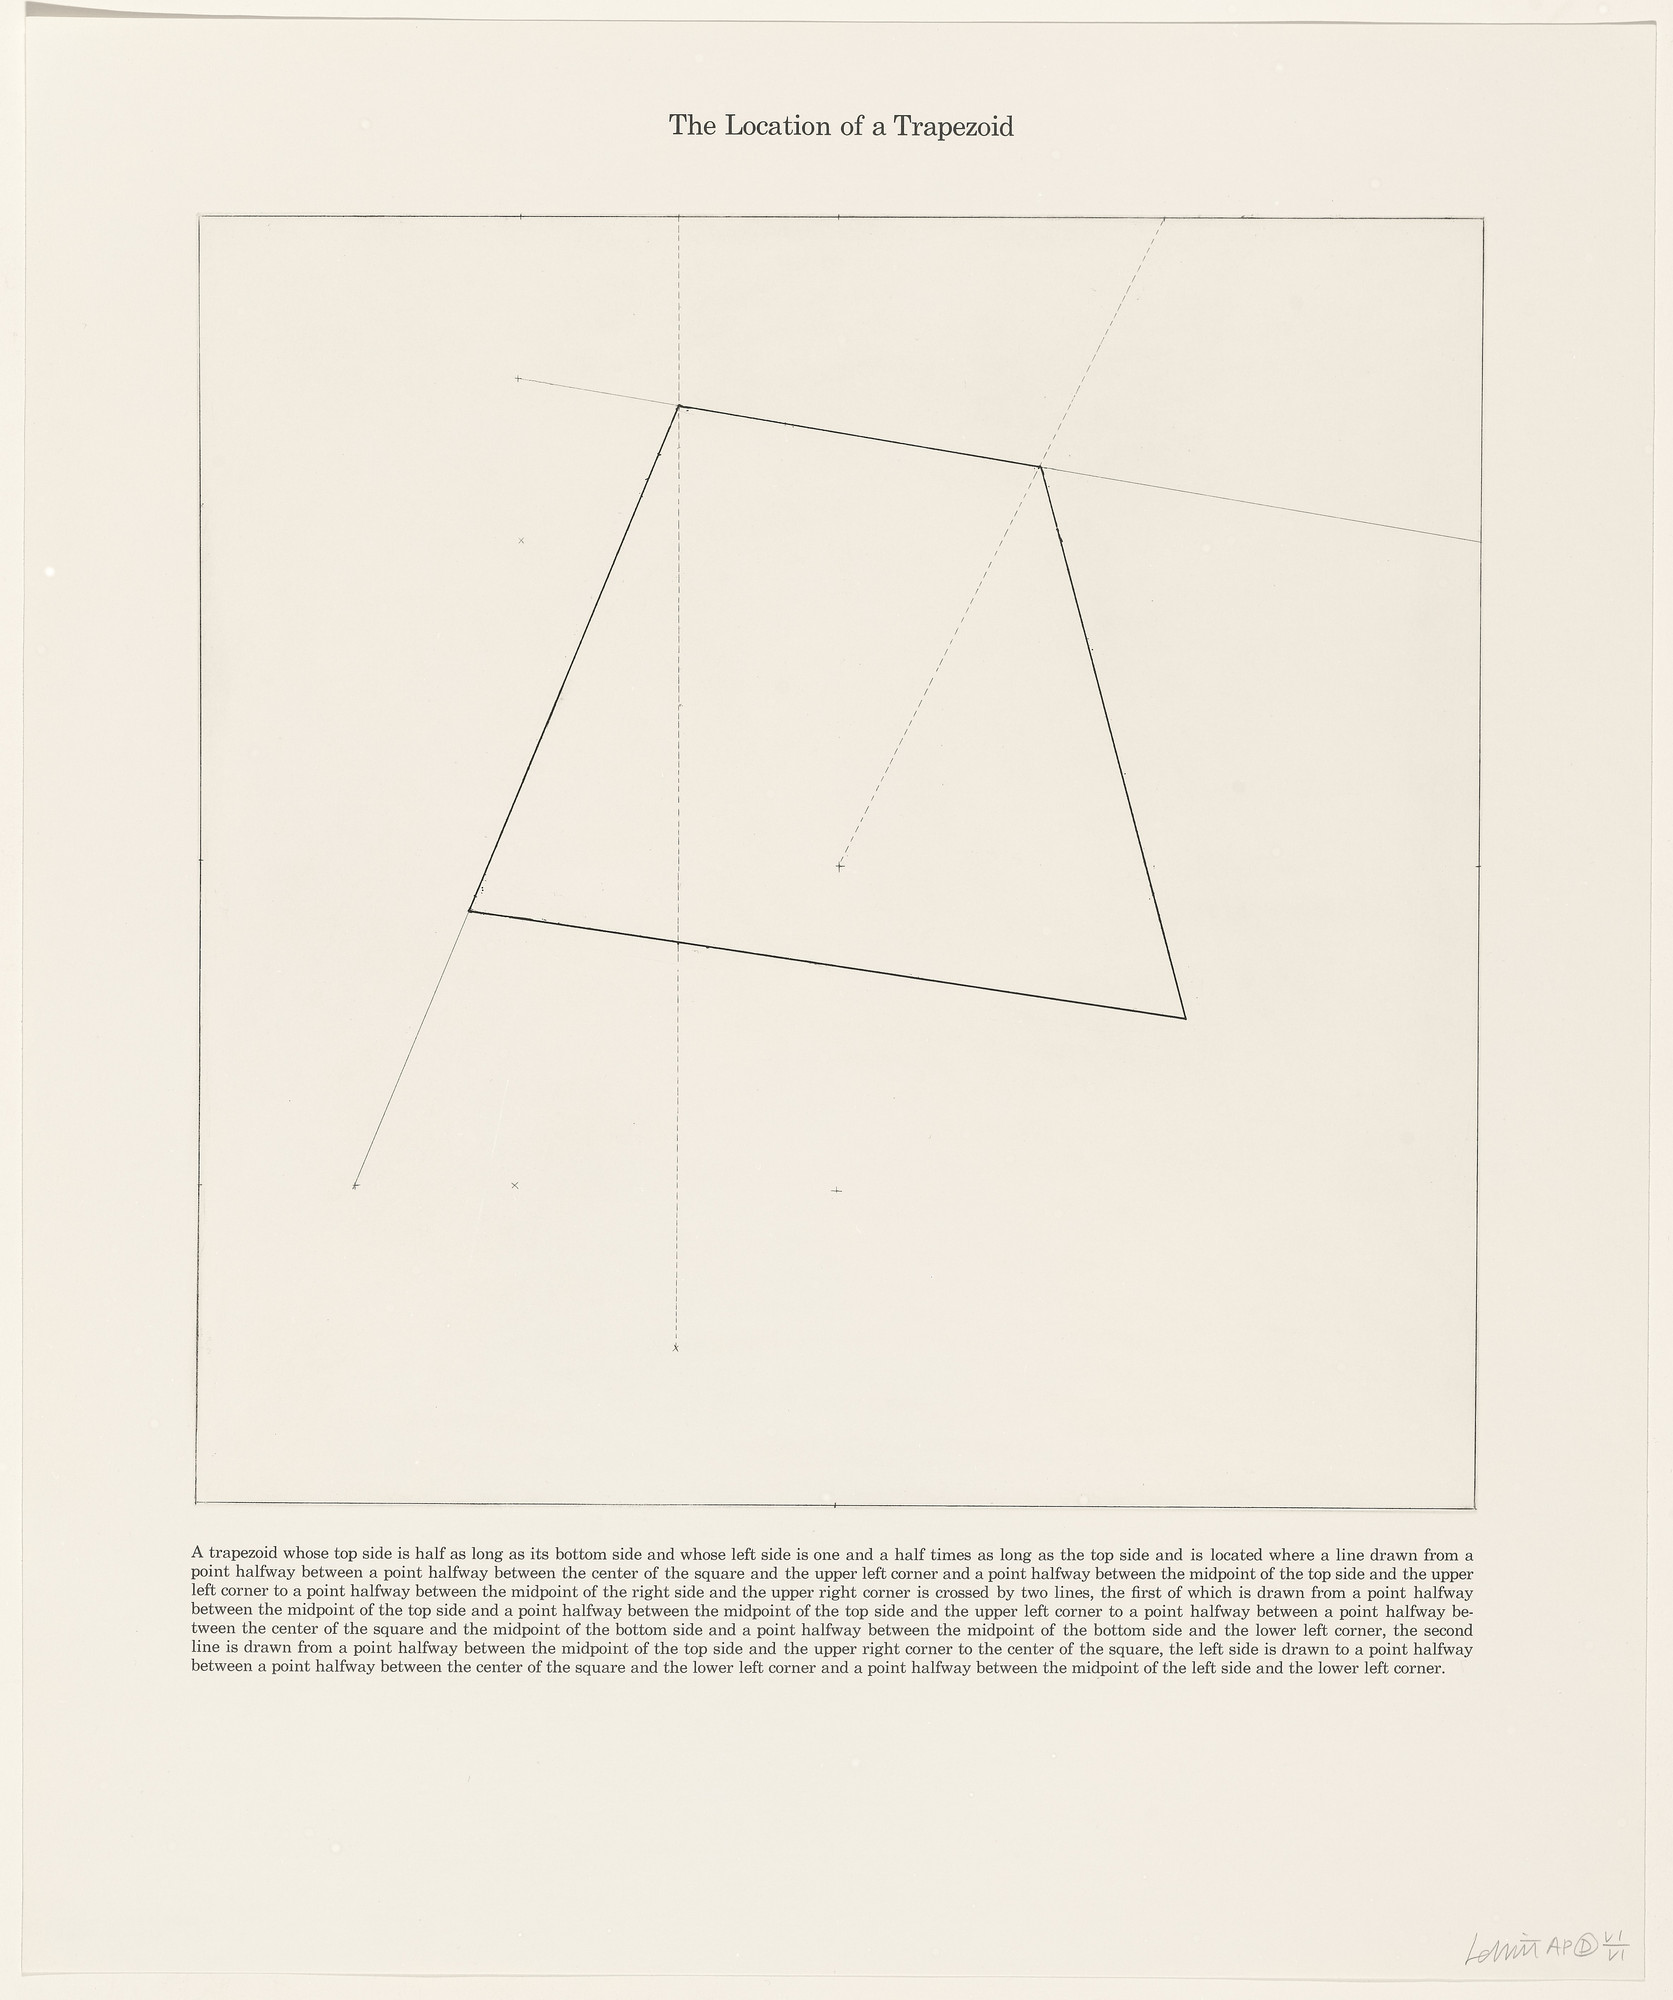 Sol LeWitt  The Location of a Trapezoid from The Location of